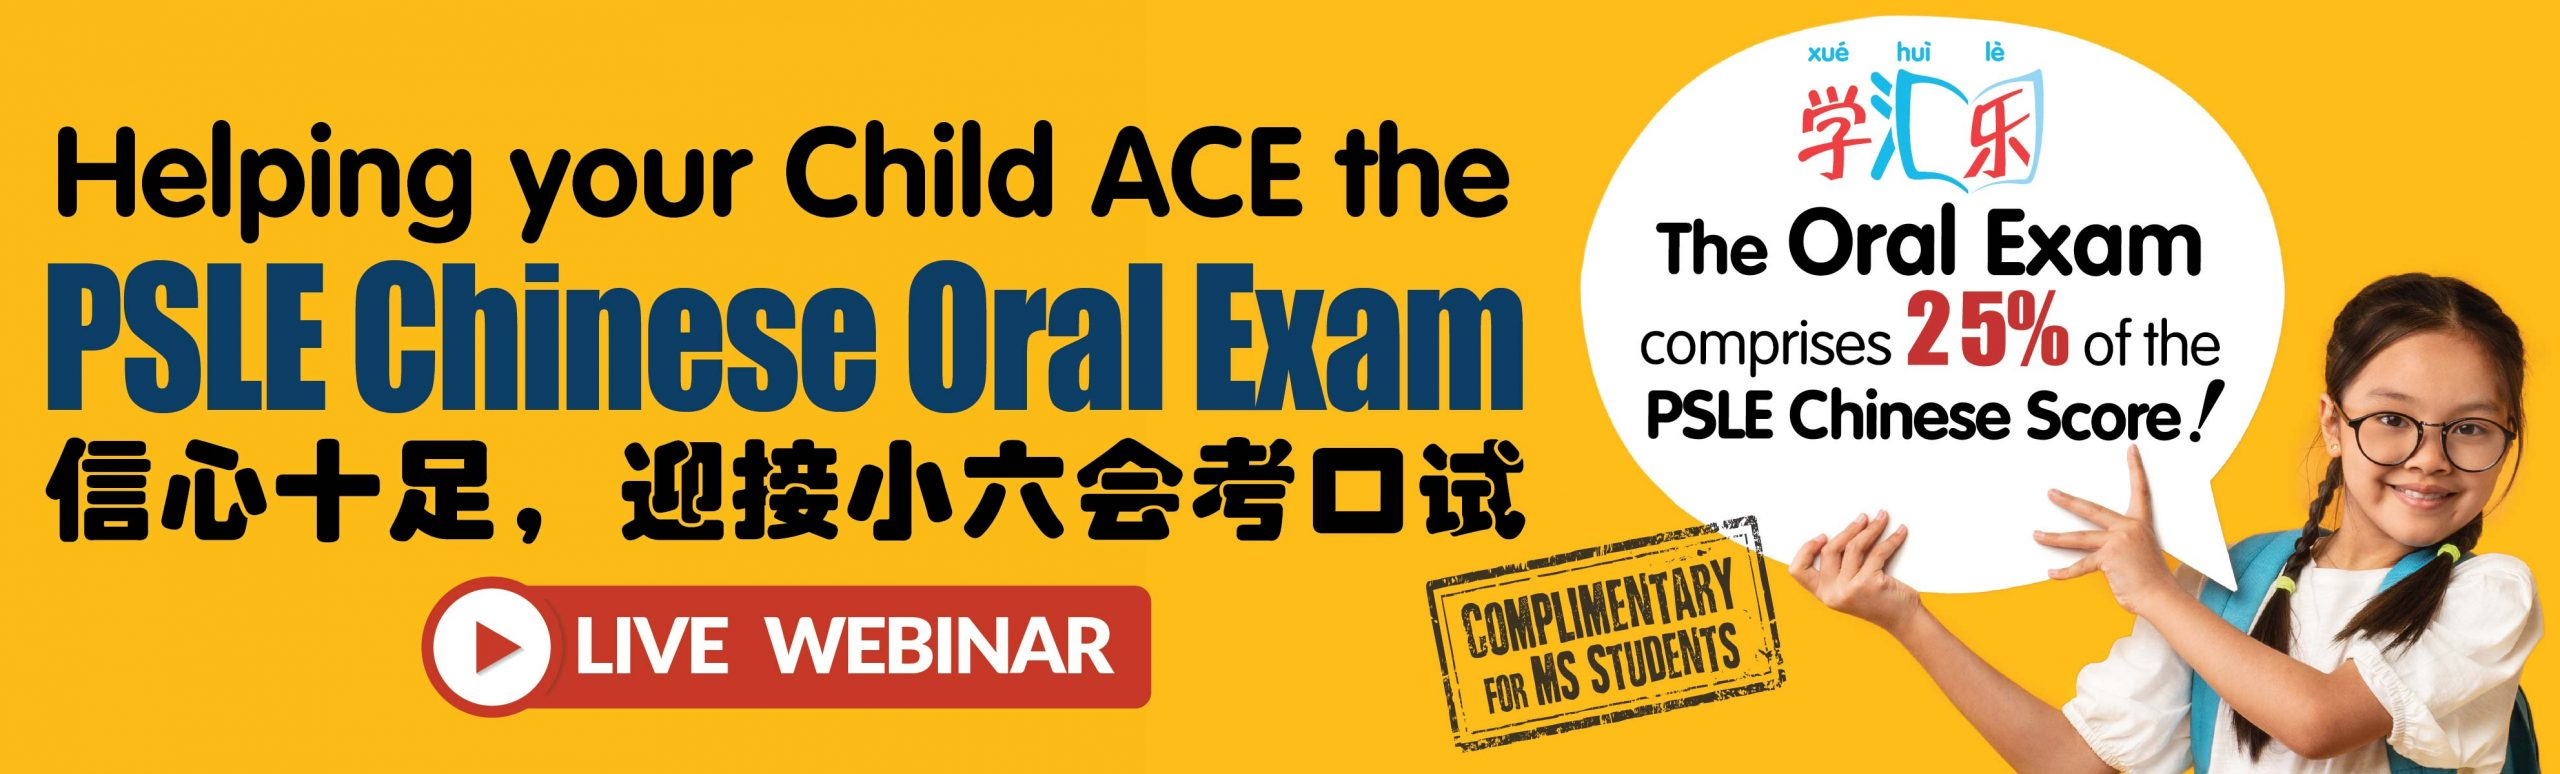 PSLE Chinese Oral Exam